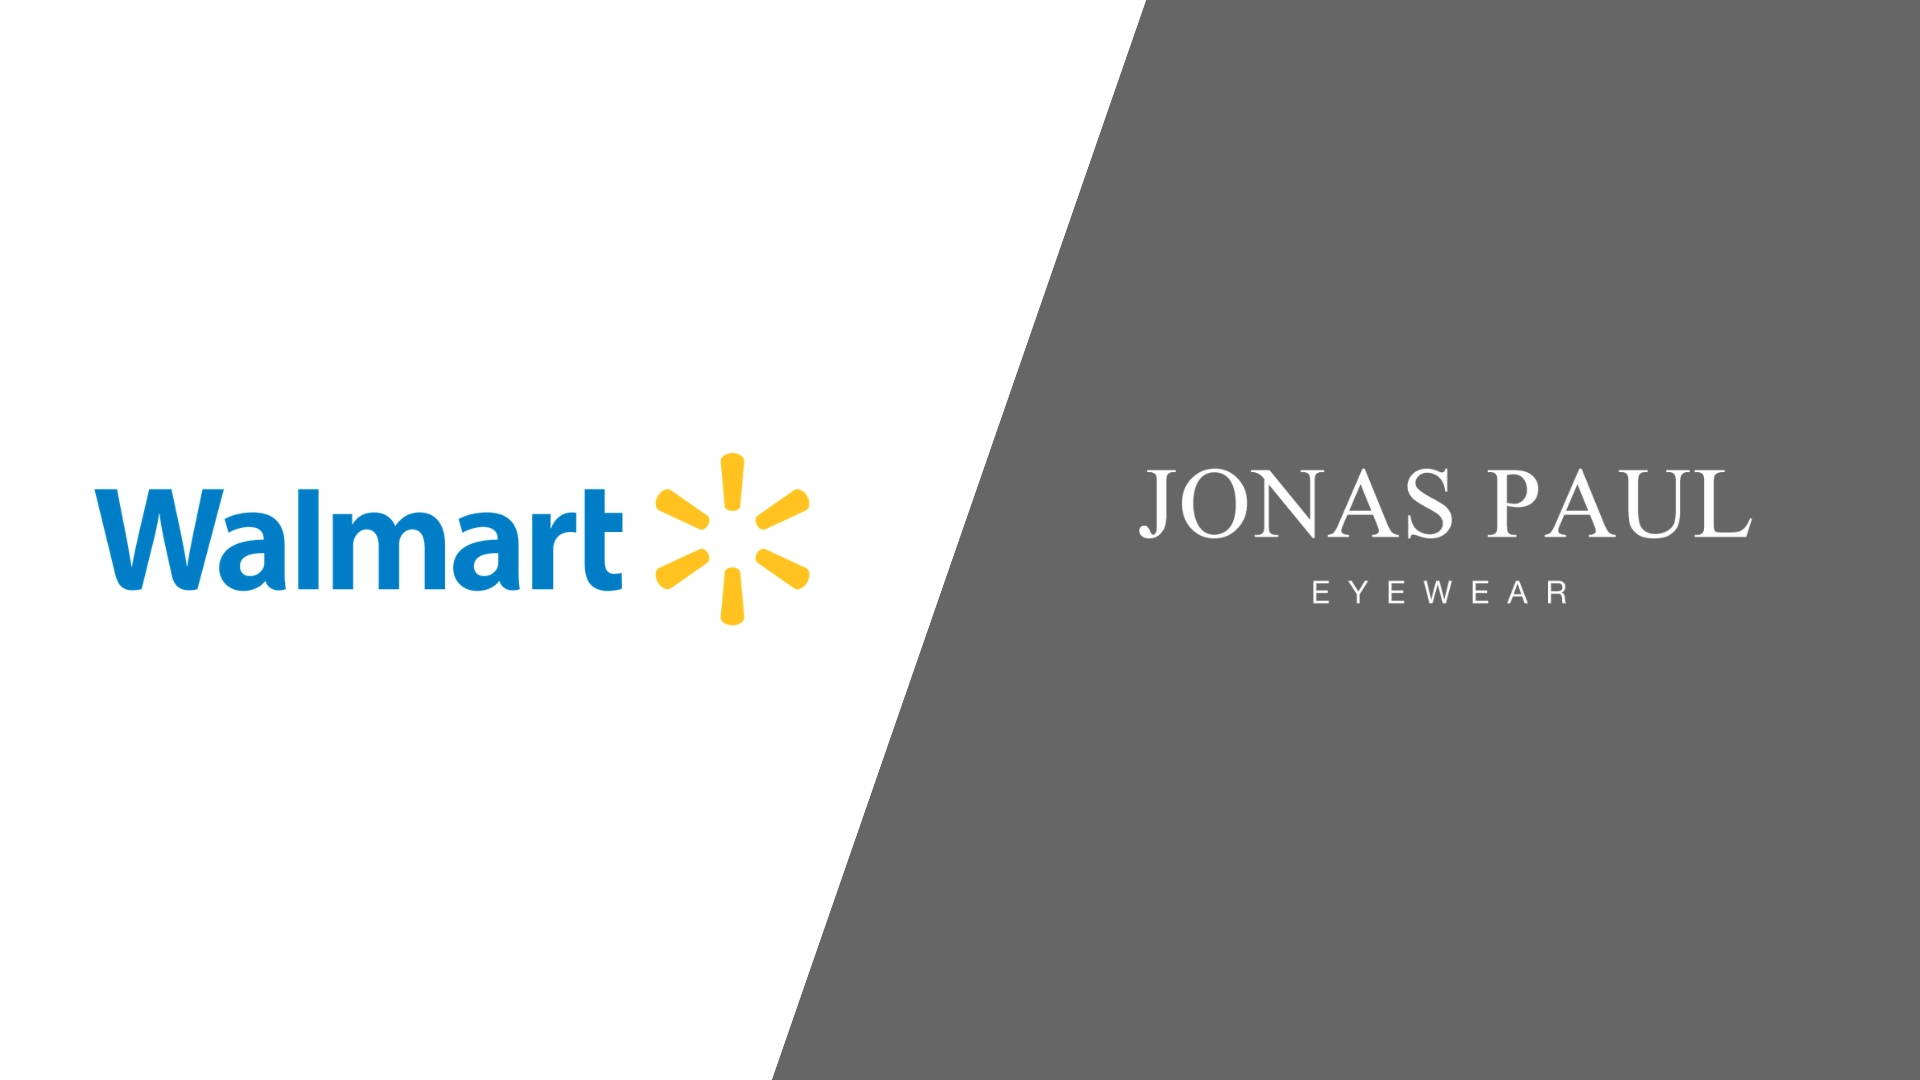 fc23f9e4a0 Jonas Paul Eyewear Partners with Walmart to Bring Trendy Kids Glasses to  the Masses